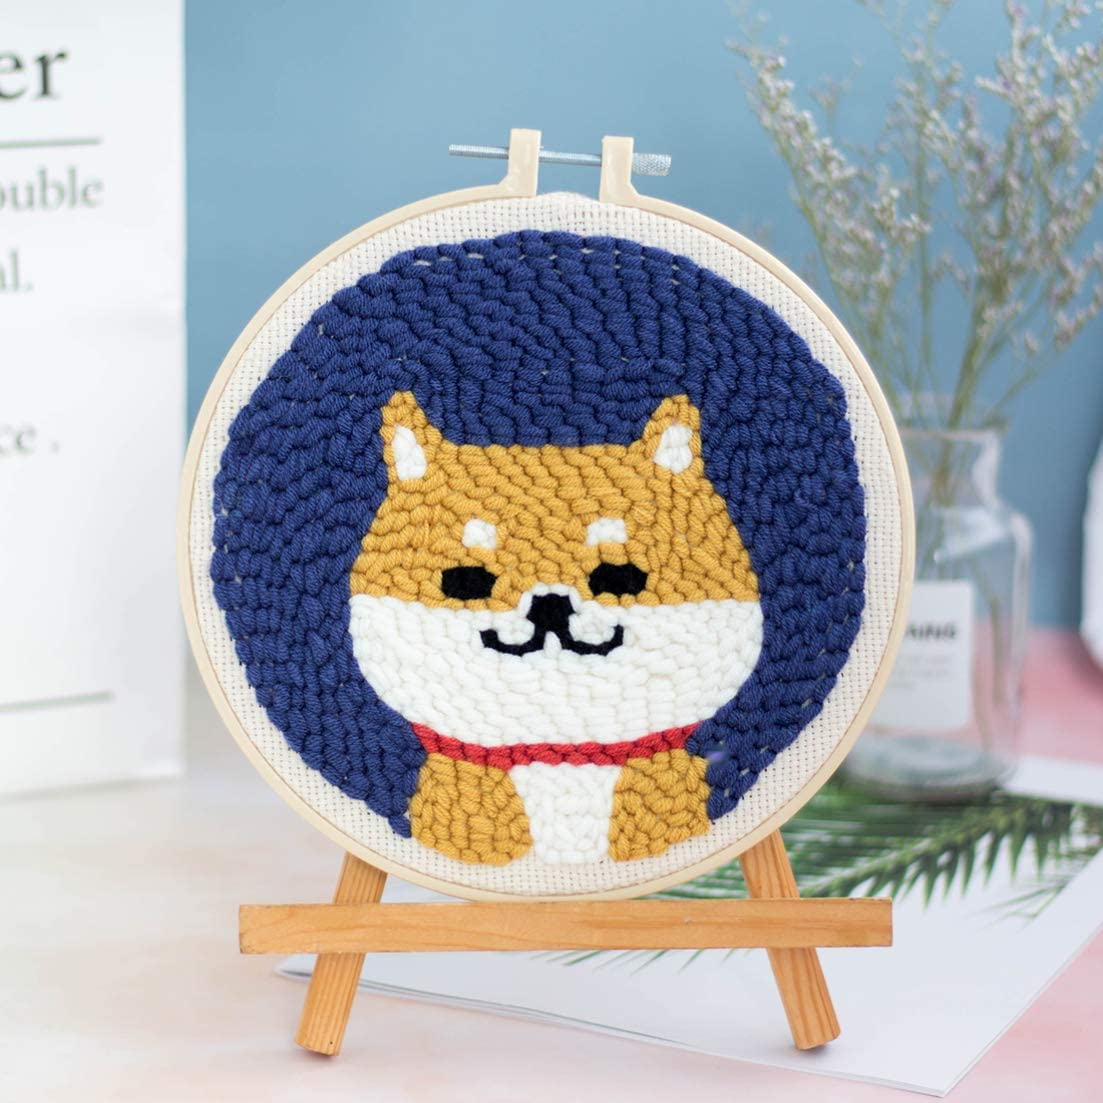 Yamix Punch Needle Embroidery Kit, DIY Rug Hooking Kit Cute Kids Craft Kit Latch Hook Kits Needlework Crafts for Kids and Adults